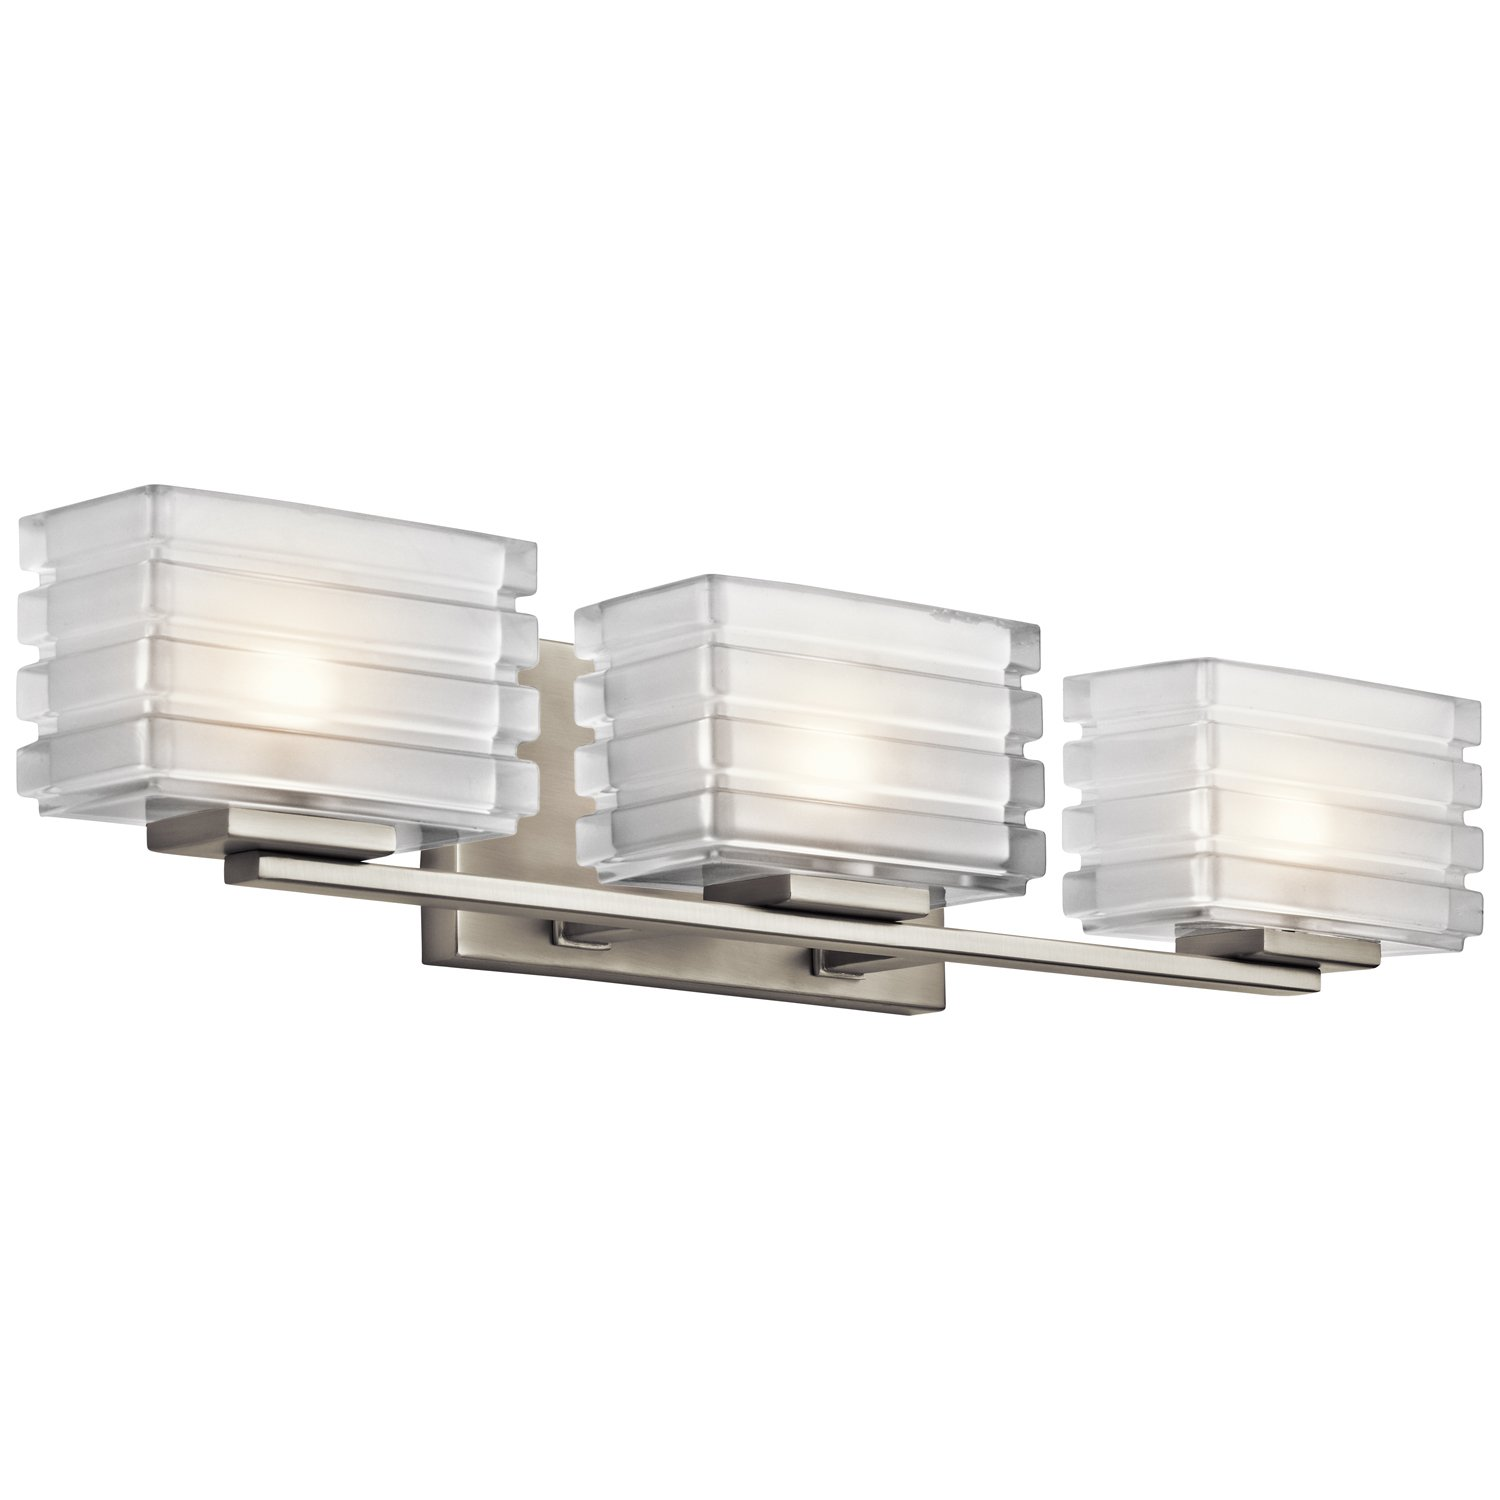 High Quality Kichler 45479NI Bazely Bath 3 Light Halogen, Brushed Nickel     Amazon.com